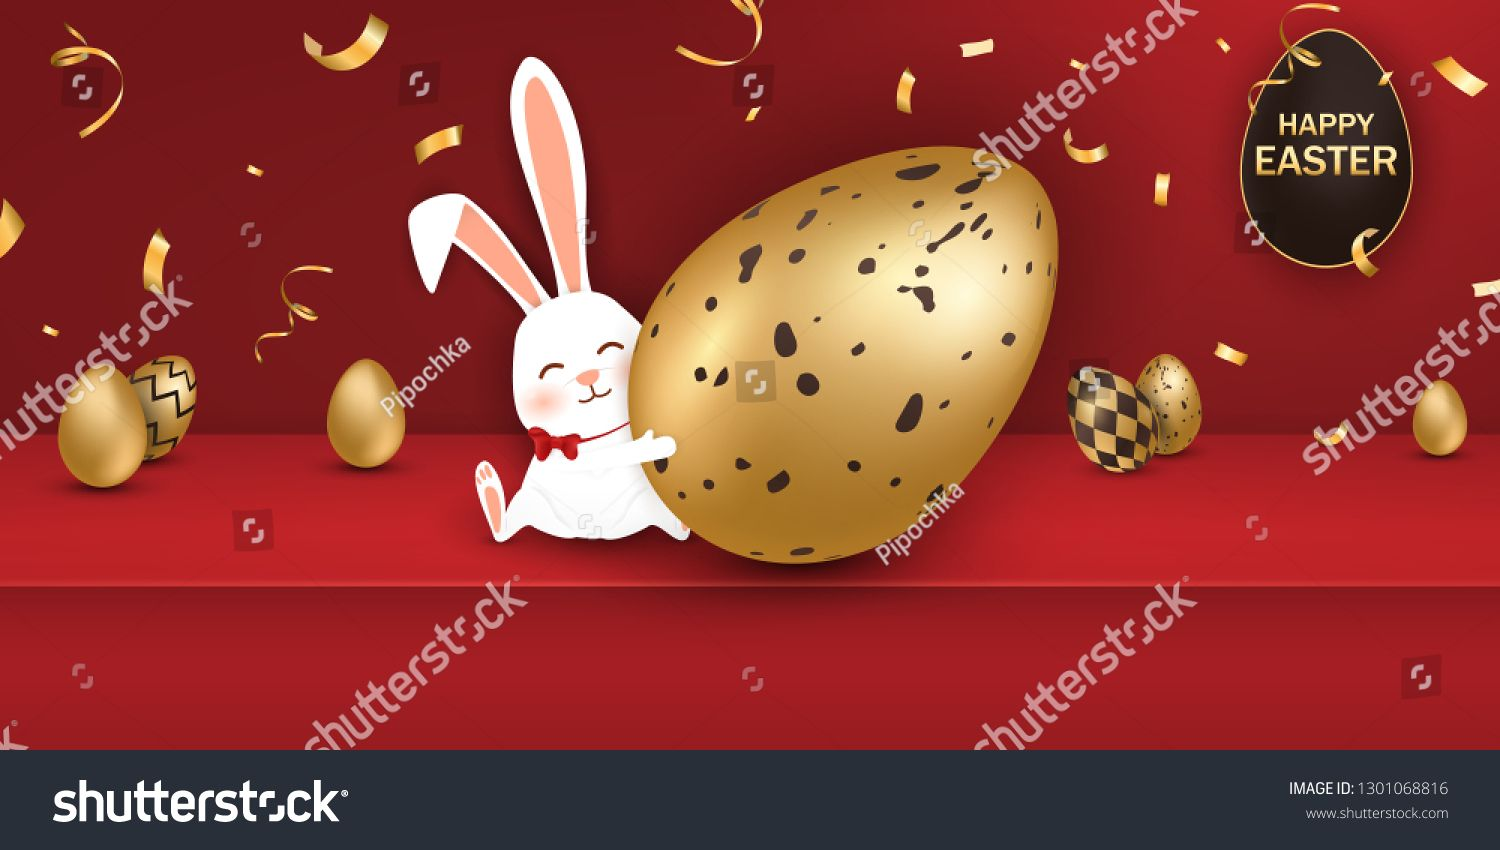 Happy Easter Easter Rabbit Bunny With Realistic Eggs On Red Background Cute Funny Cartoon Rabbit Character In 2020 Christmas Ornaments Easter Rabbit Rabbit Cartoon